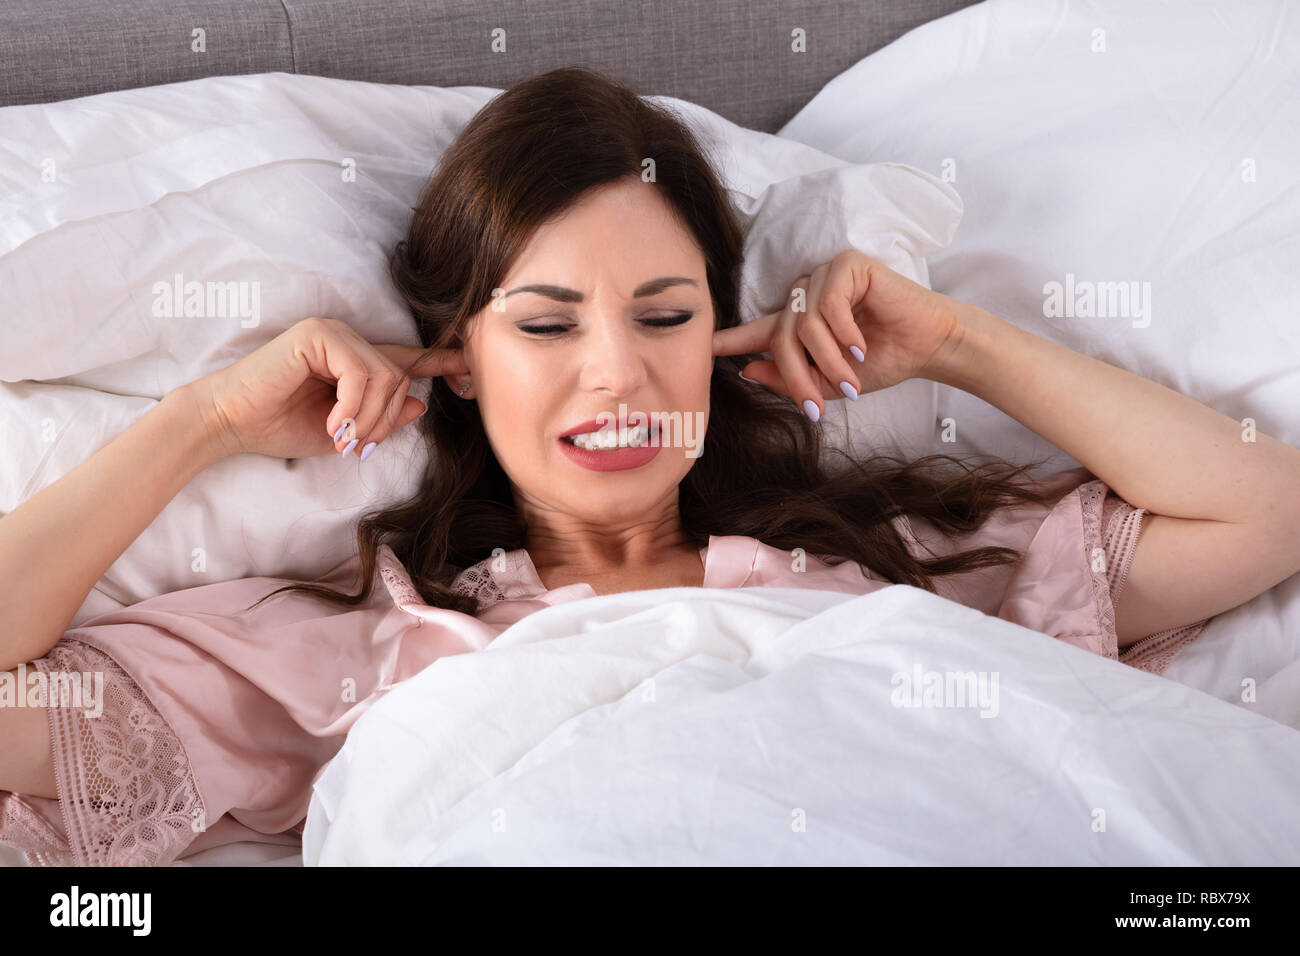 Young Woman Disturbed By Noise Covering Her Ears With Finger - Stock Image